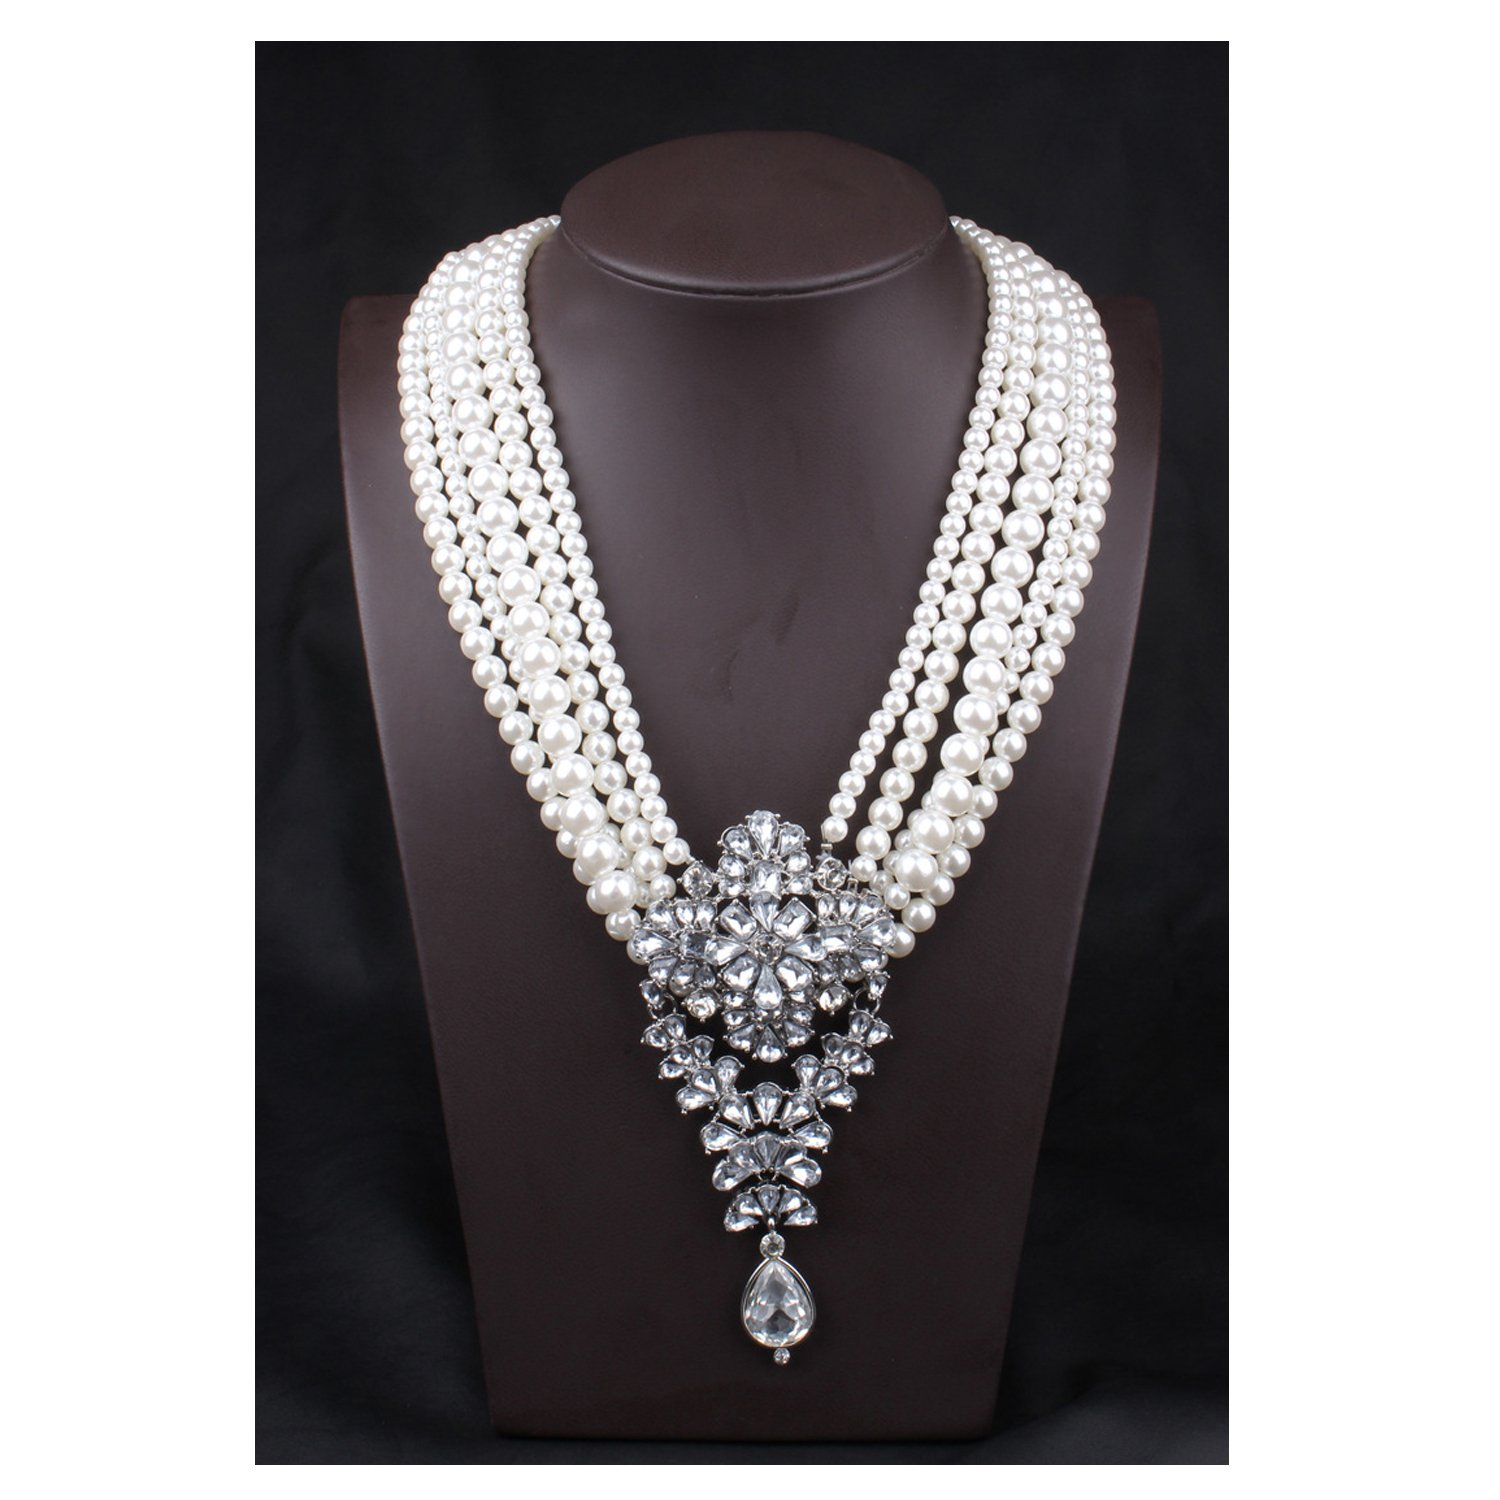 Hamer Women's White Pearl Crystal Long Pendant Link Chain Statement Choker Necklace Jewelry Luxury